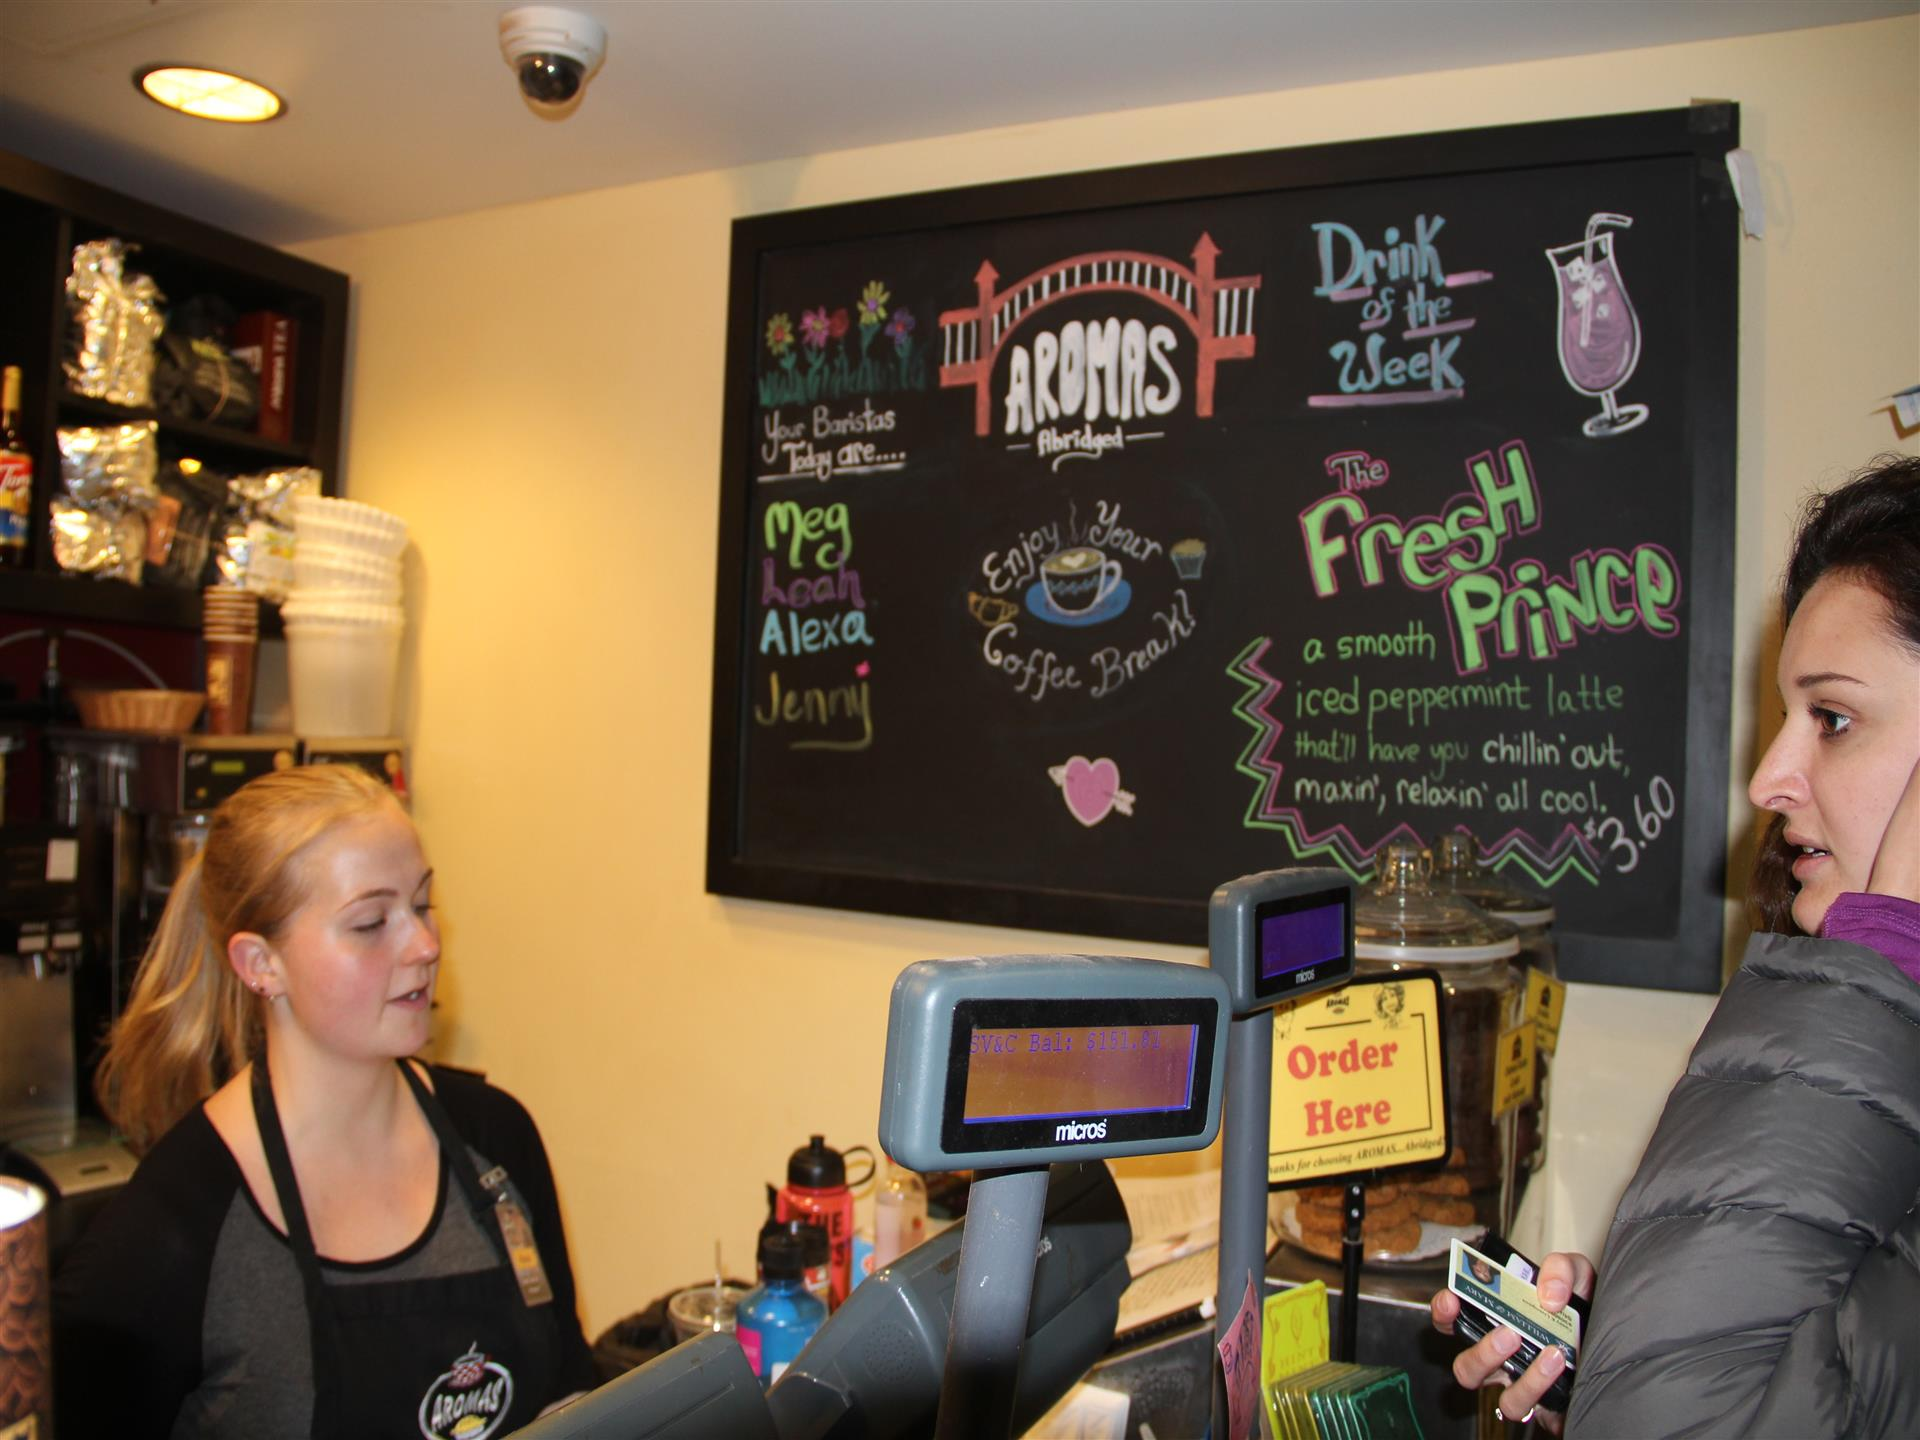 person ordering coffee with worker behind counter taking order with menu on black chalkboard